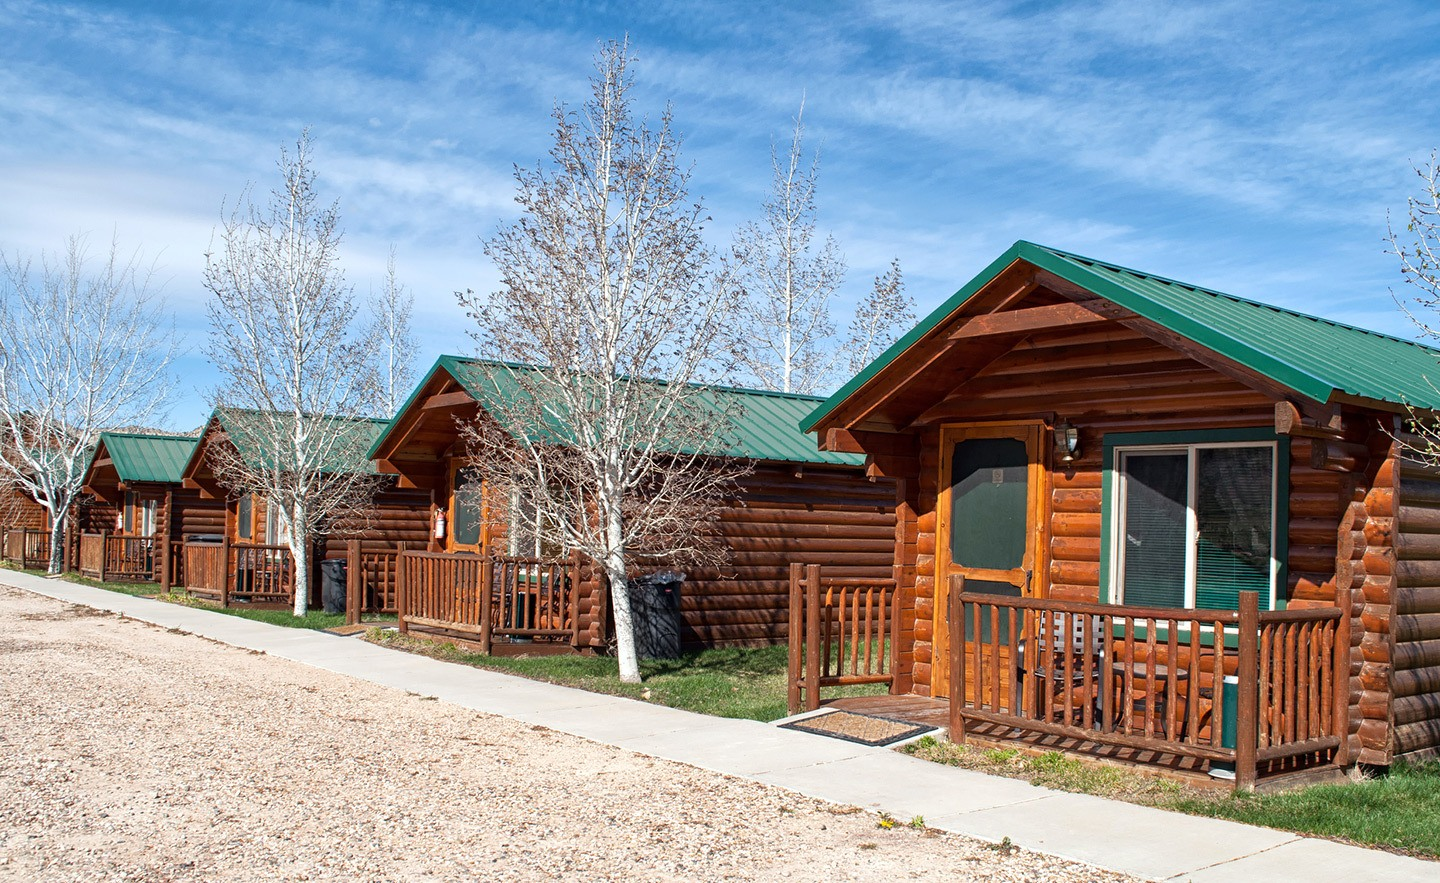 Bryce Country Cabins in Tropic, Utah